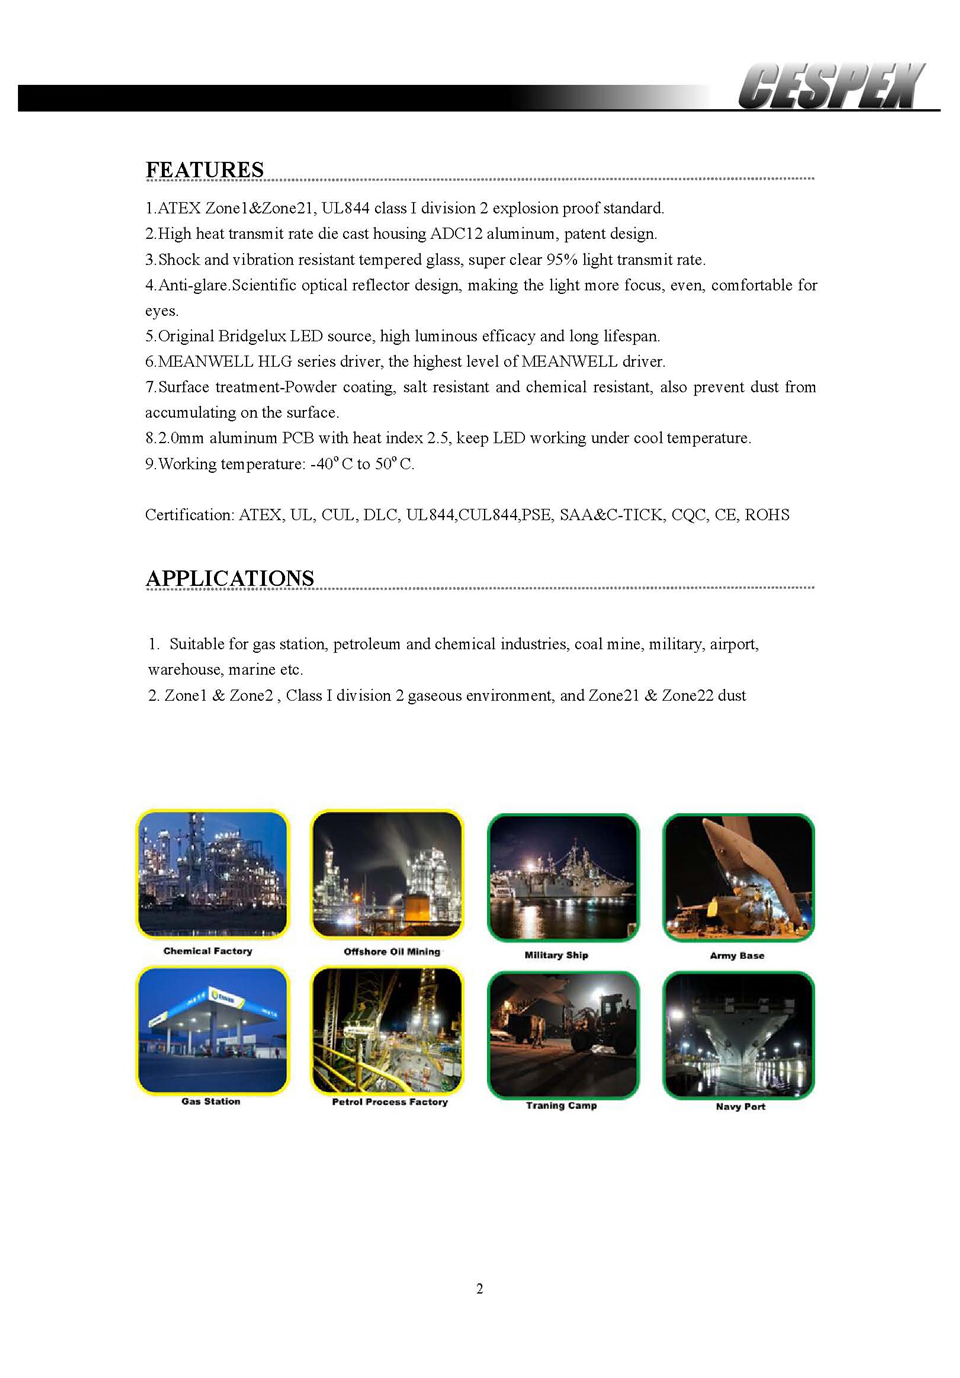 Datasheet of ATEX UL LED explosion proof lights__2